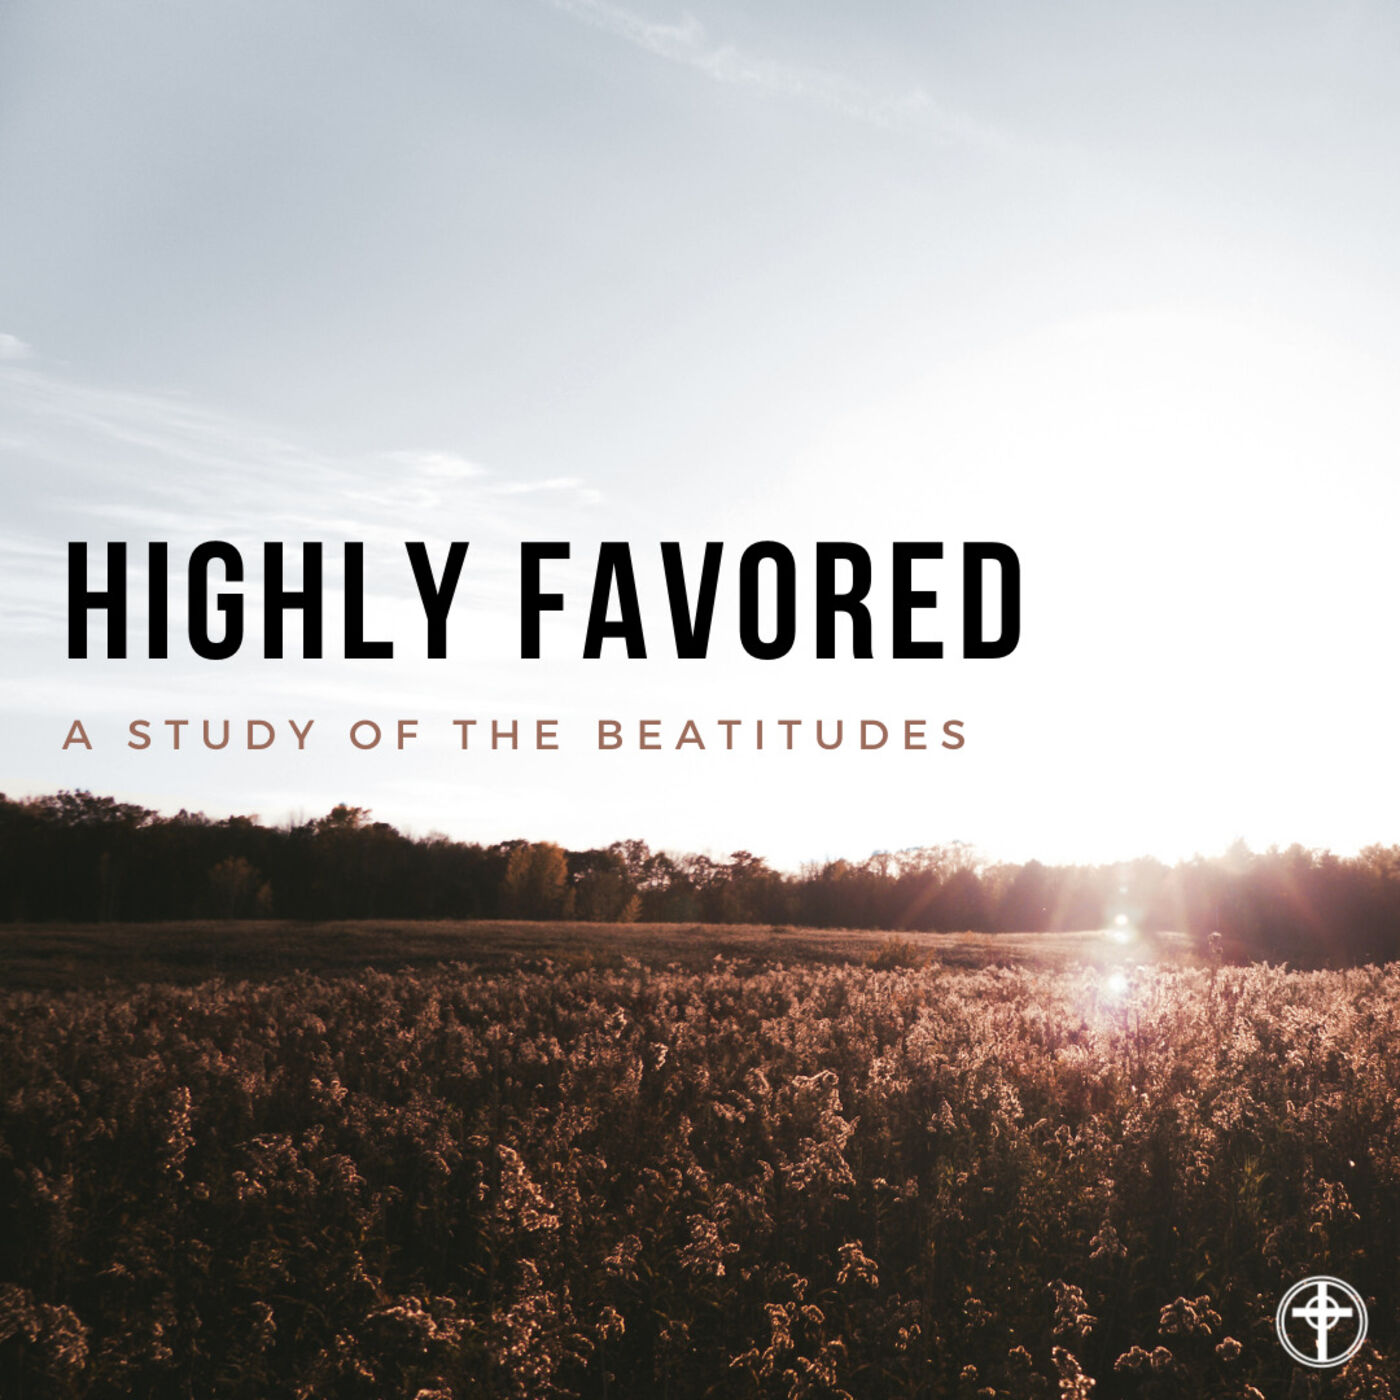 Highly Favored - The Pure in Heart - Matthew 5:8